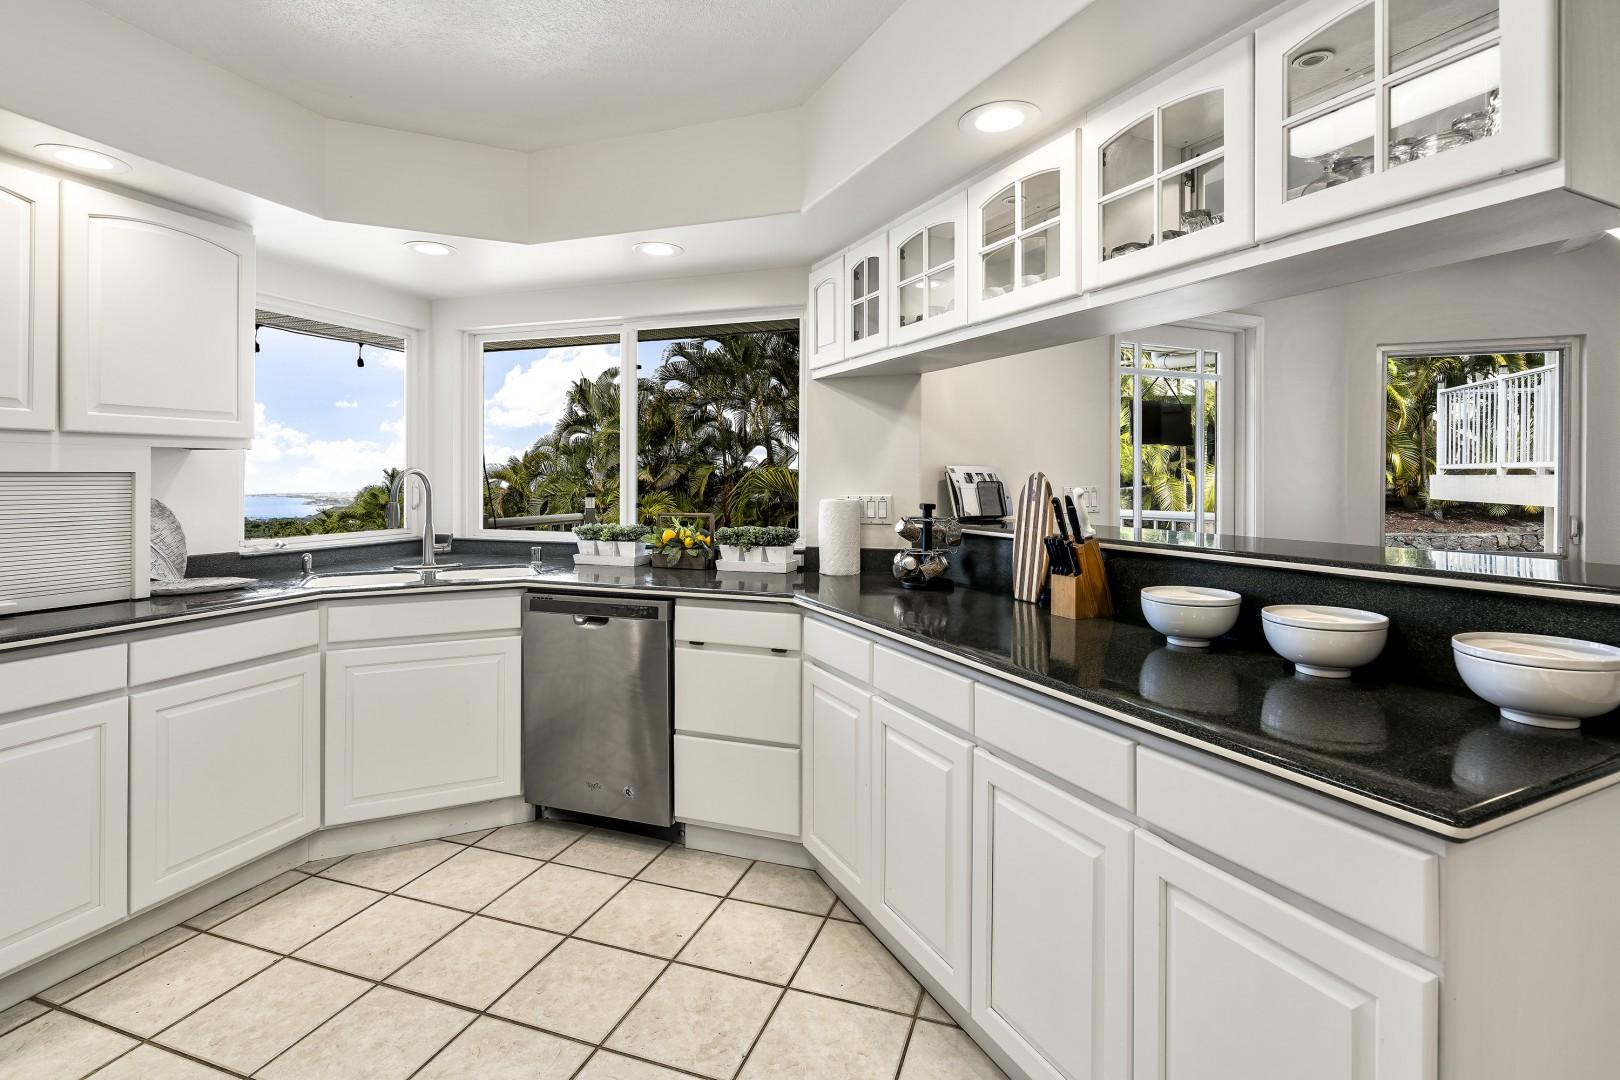 Fully equipped kitchen large enough for guests to assist in meal preparation!